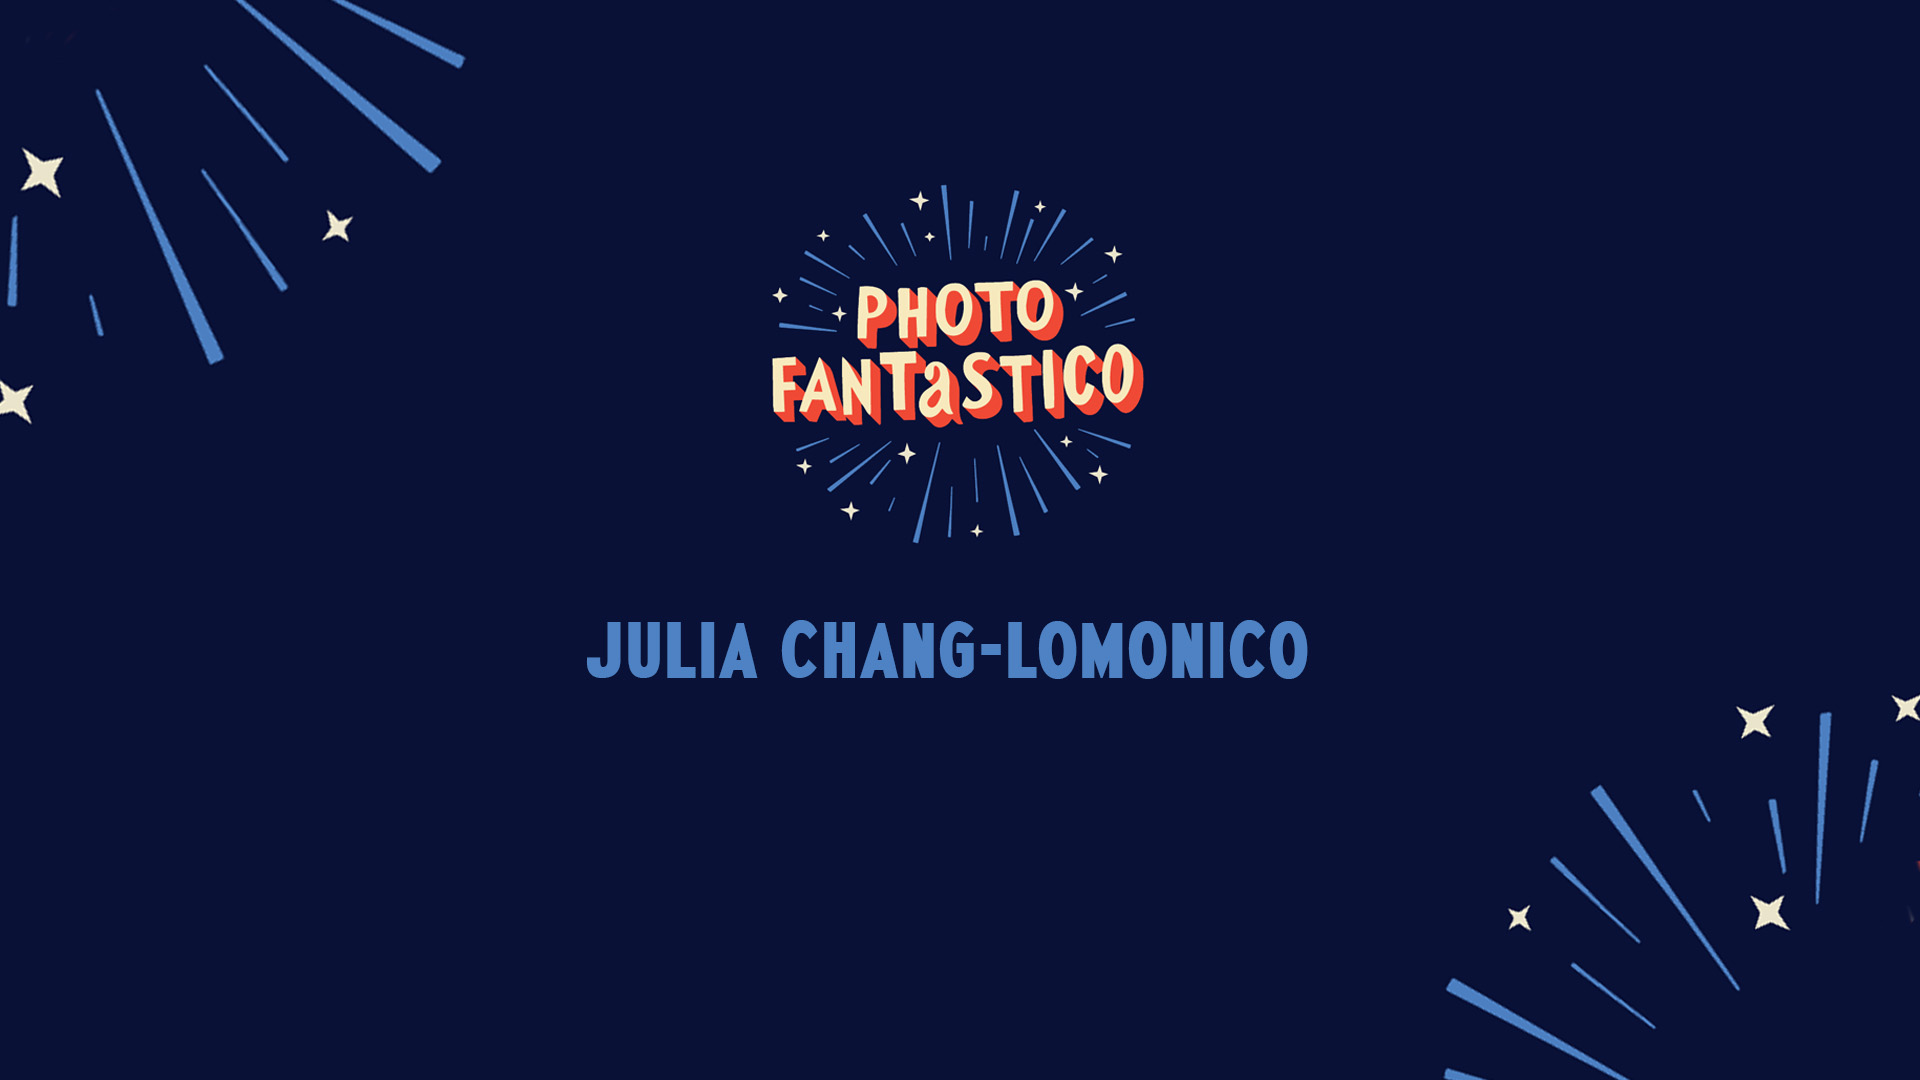 Julia Chang-Lomonico